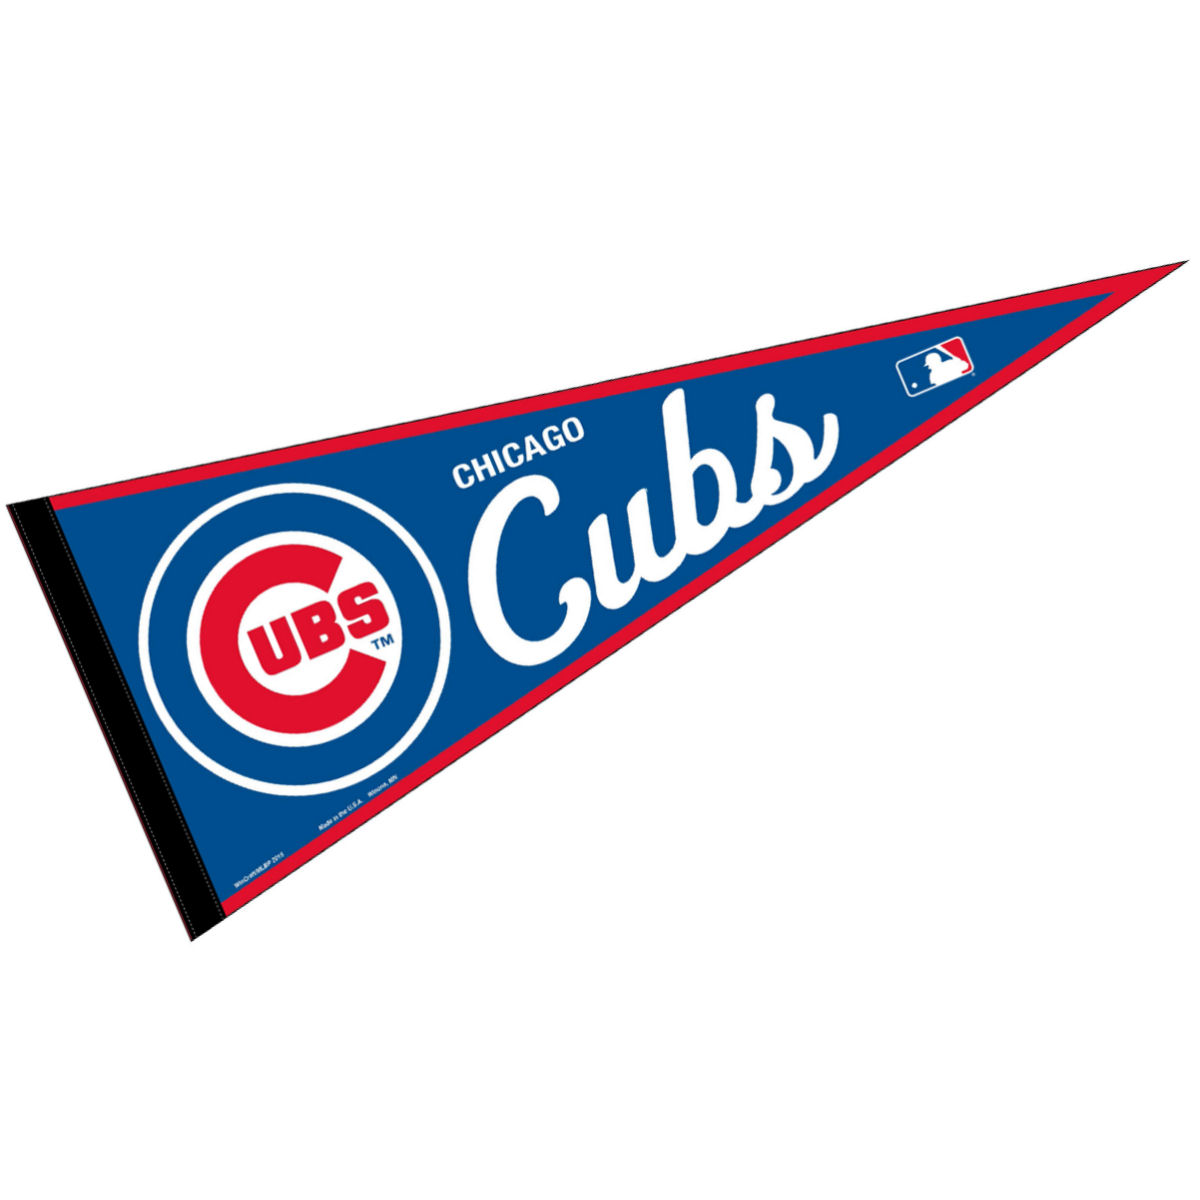 MLB Chicago Cubs Full Size Pennant